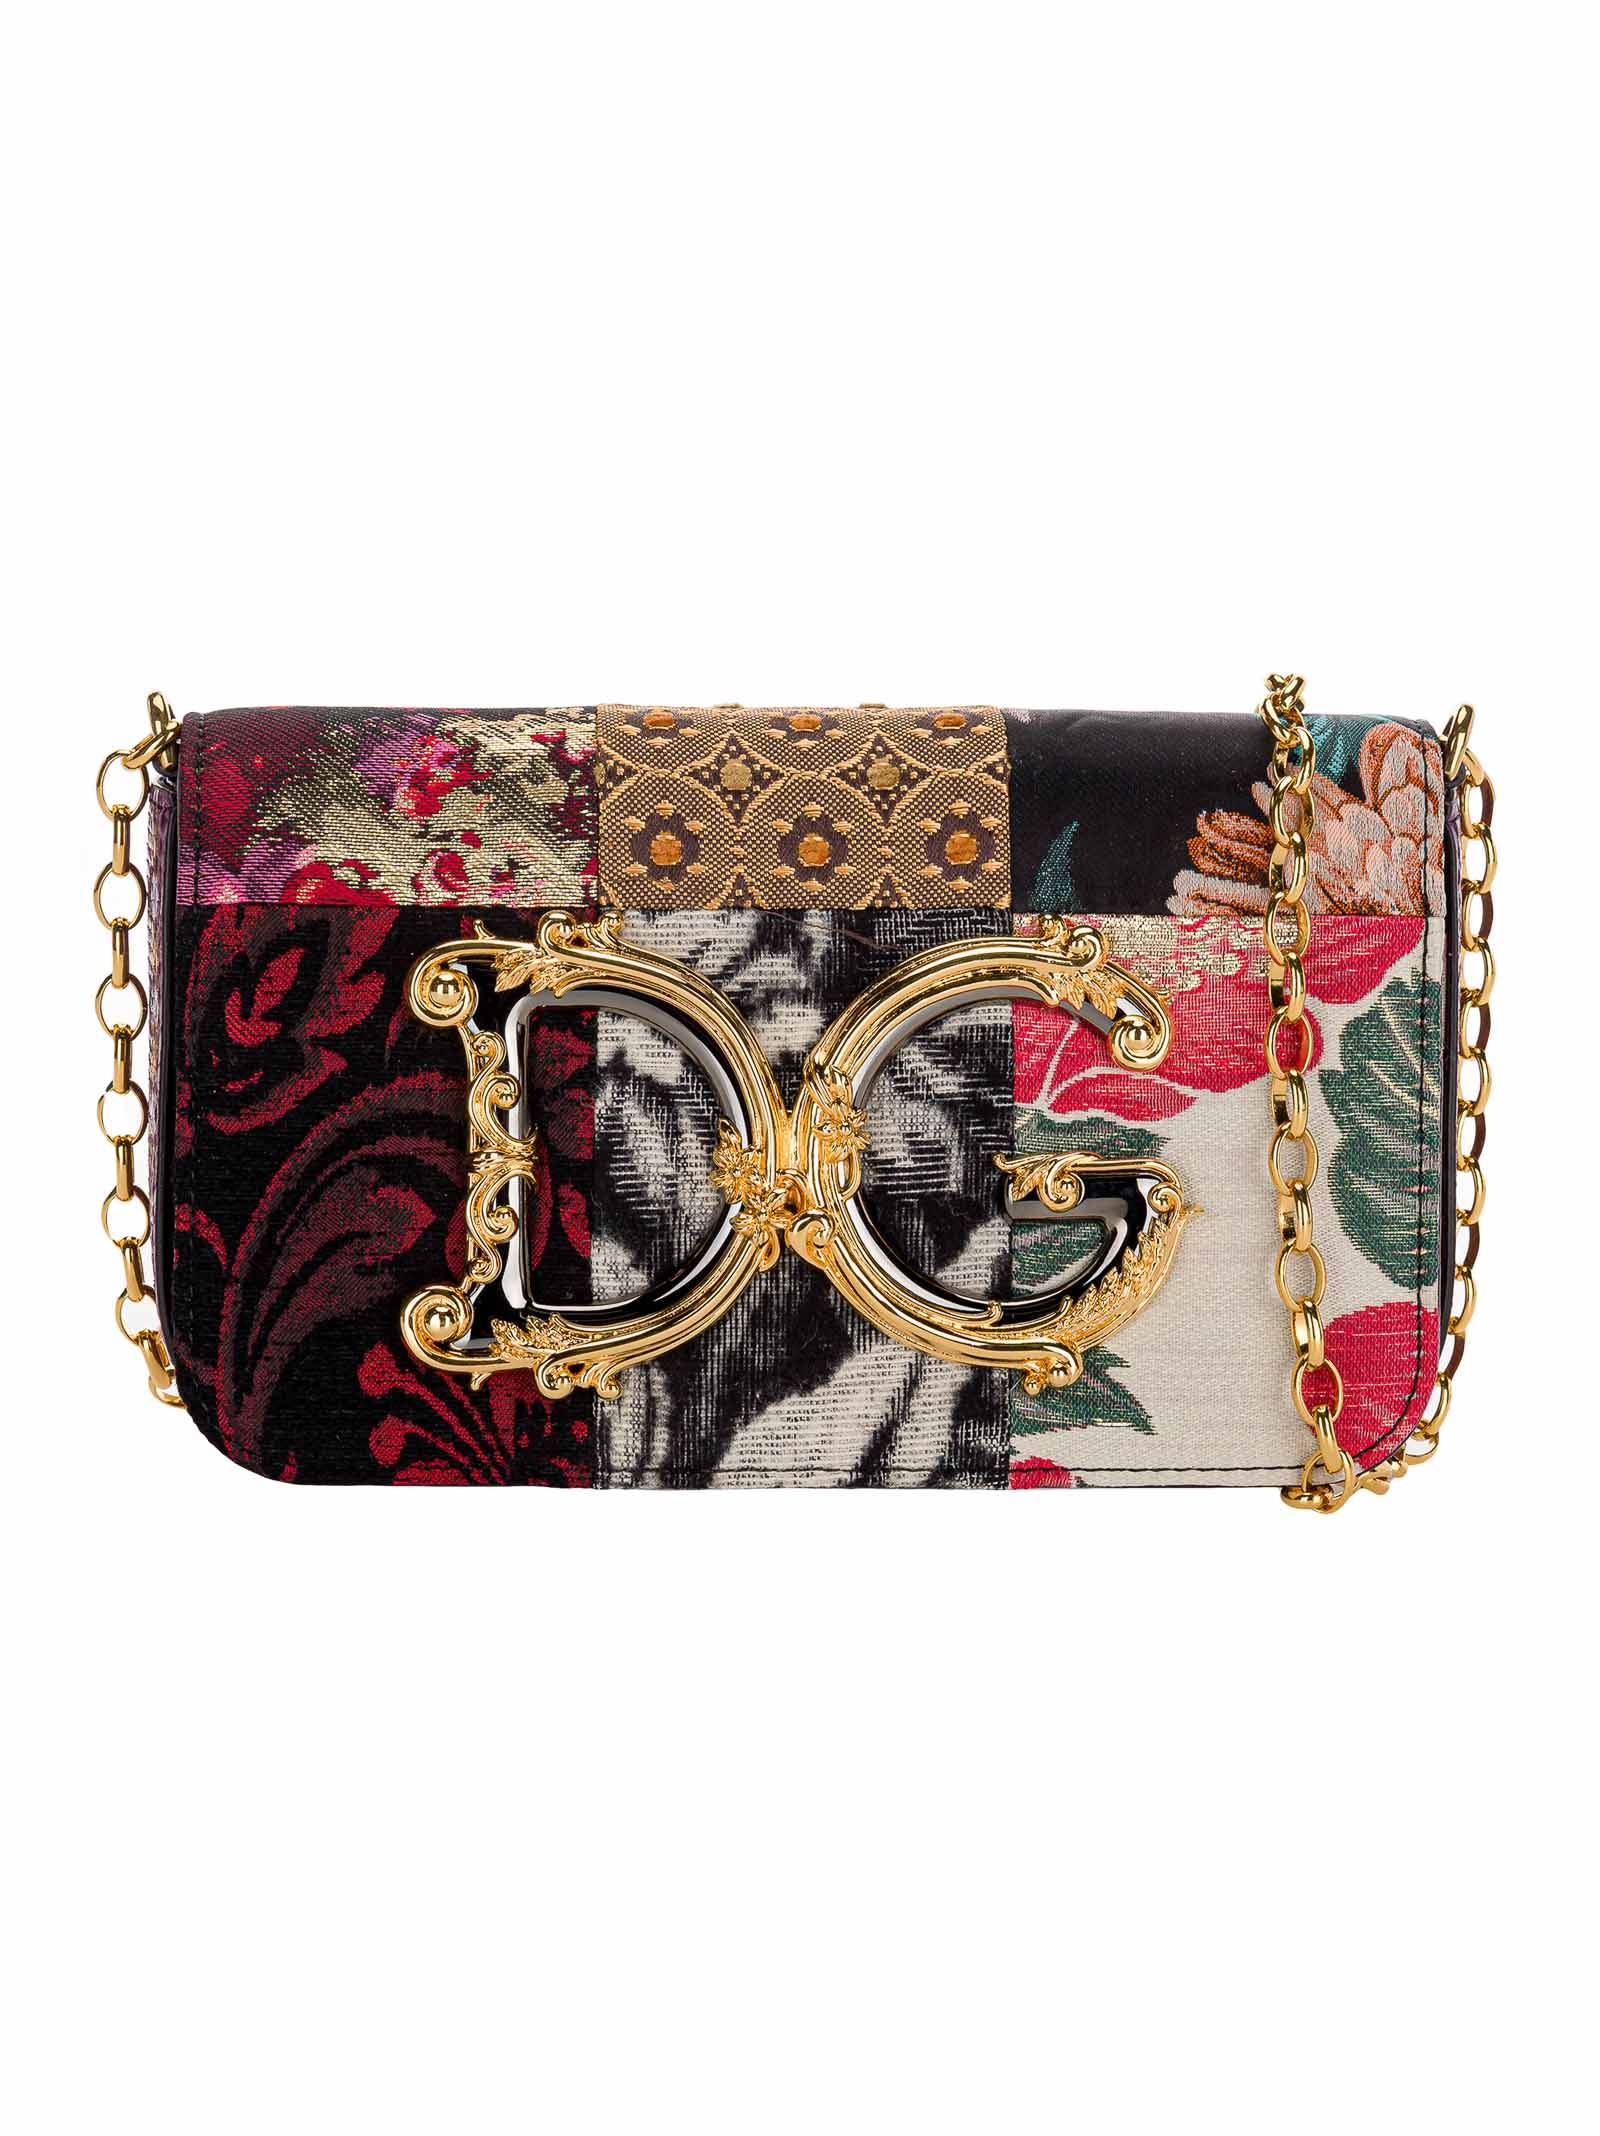 Dolce & gabbana Dg Girls Clutch In Patchwork Fabric And Ayers